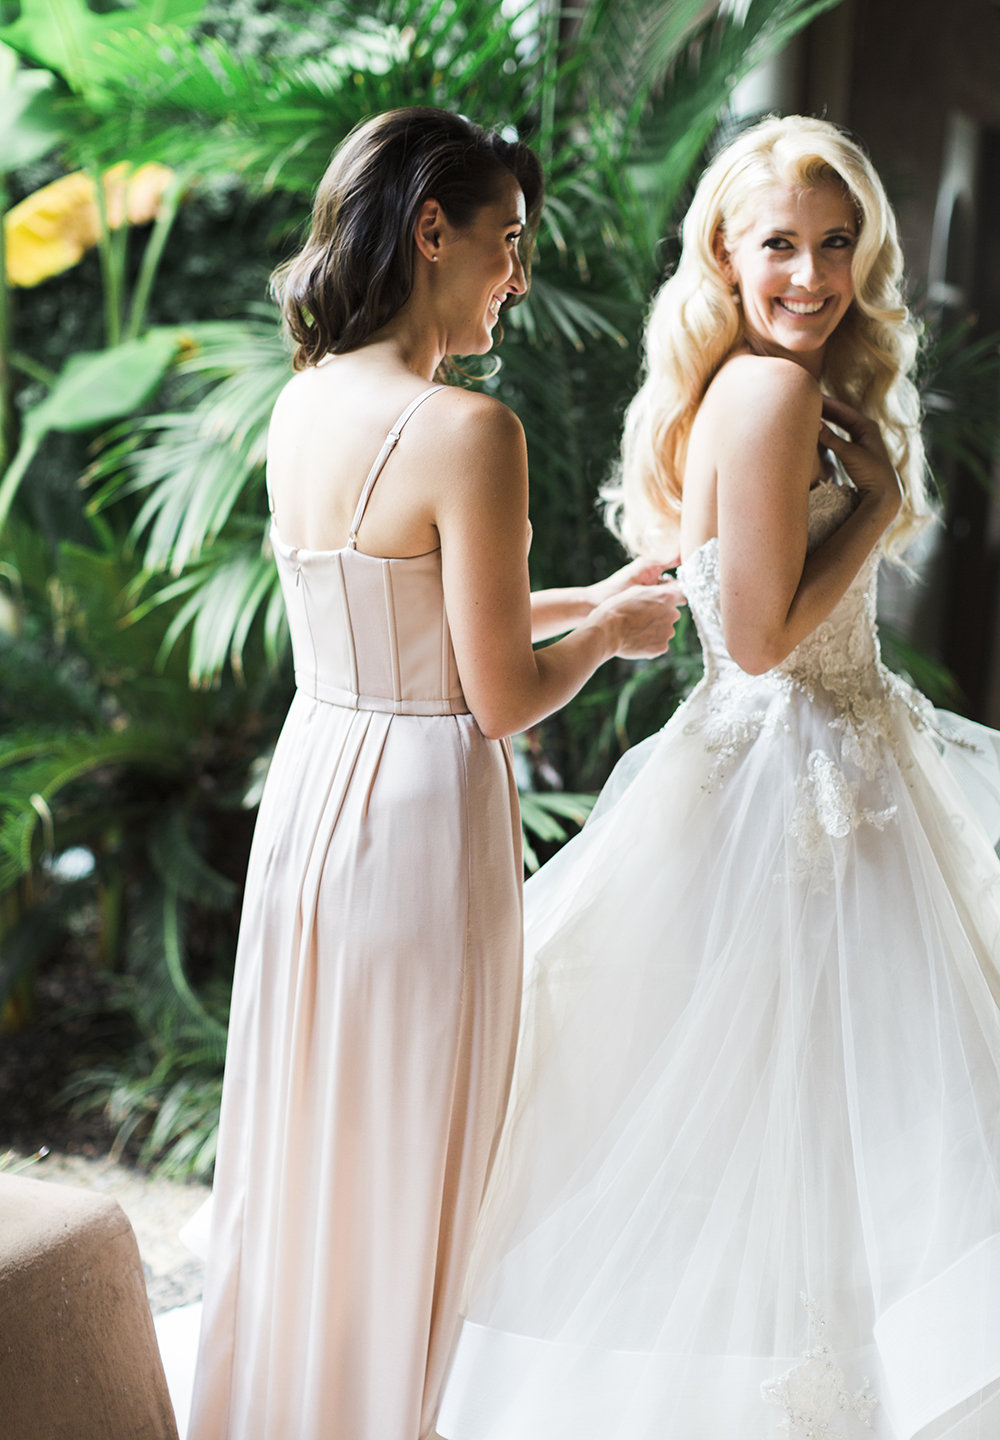 All smiles in Monique Lhullier!